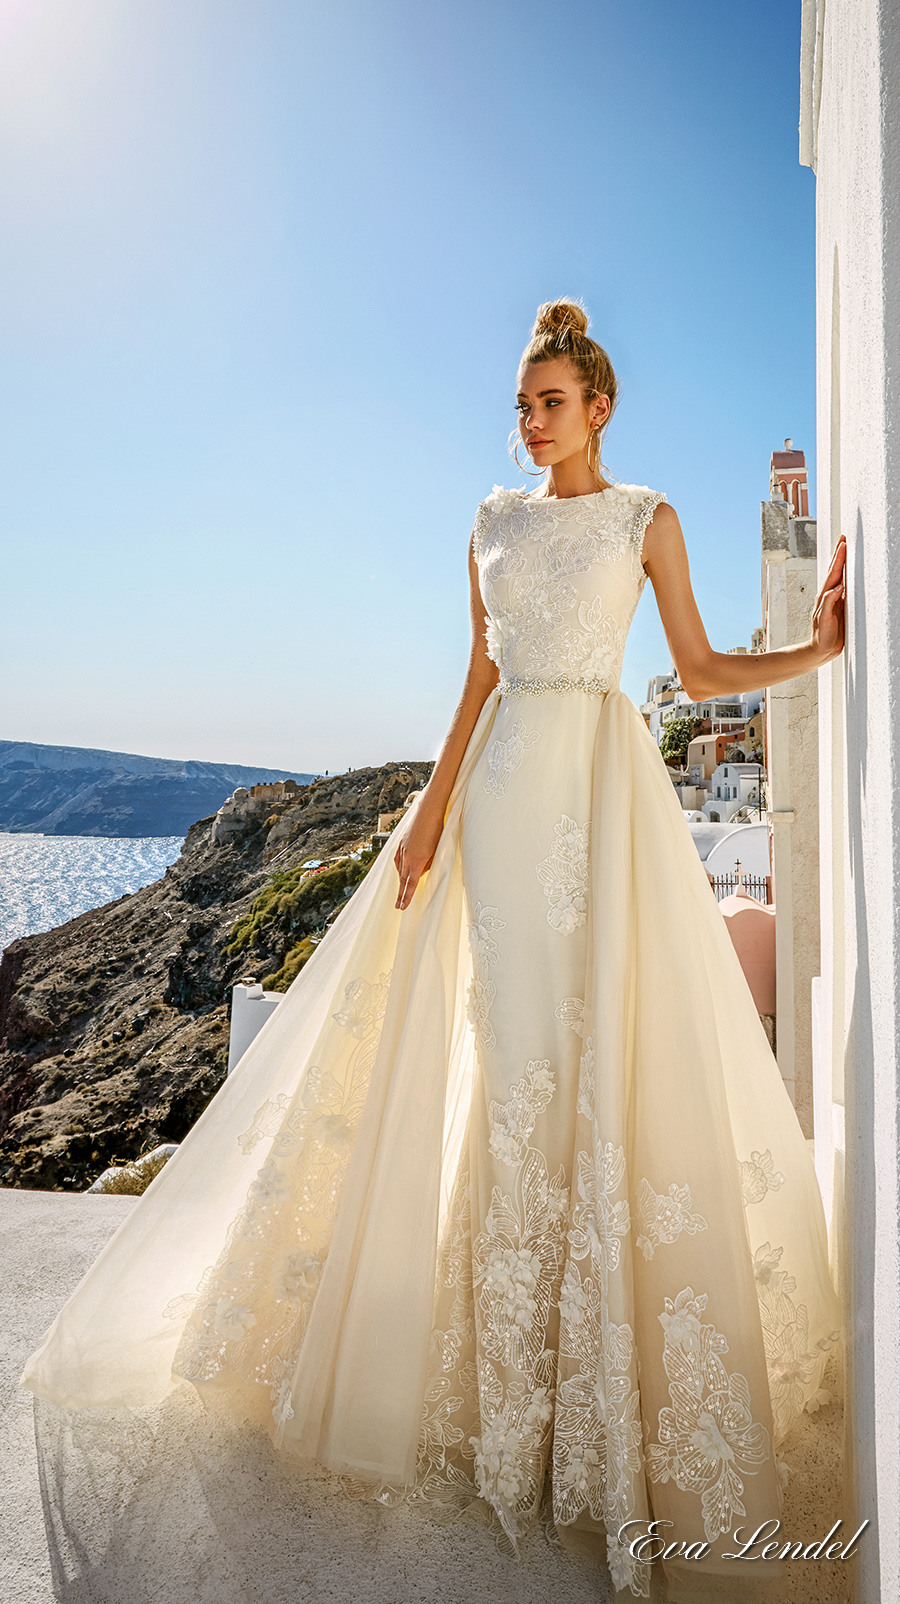 eva lendel 2017 bridal sleeveless jewel neckline heavily embellished bodice elegant fit and flare wedding dress a line overskirt full lace back sweep train (maya) mv